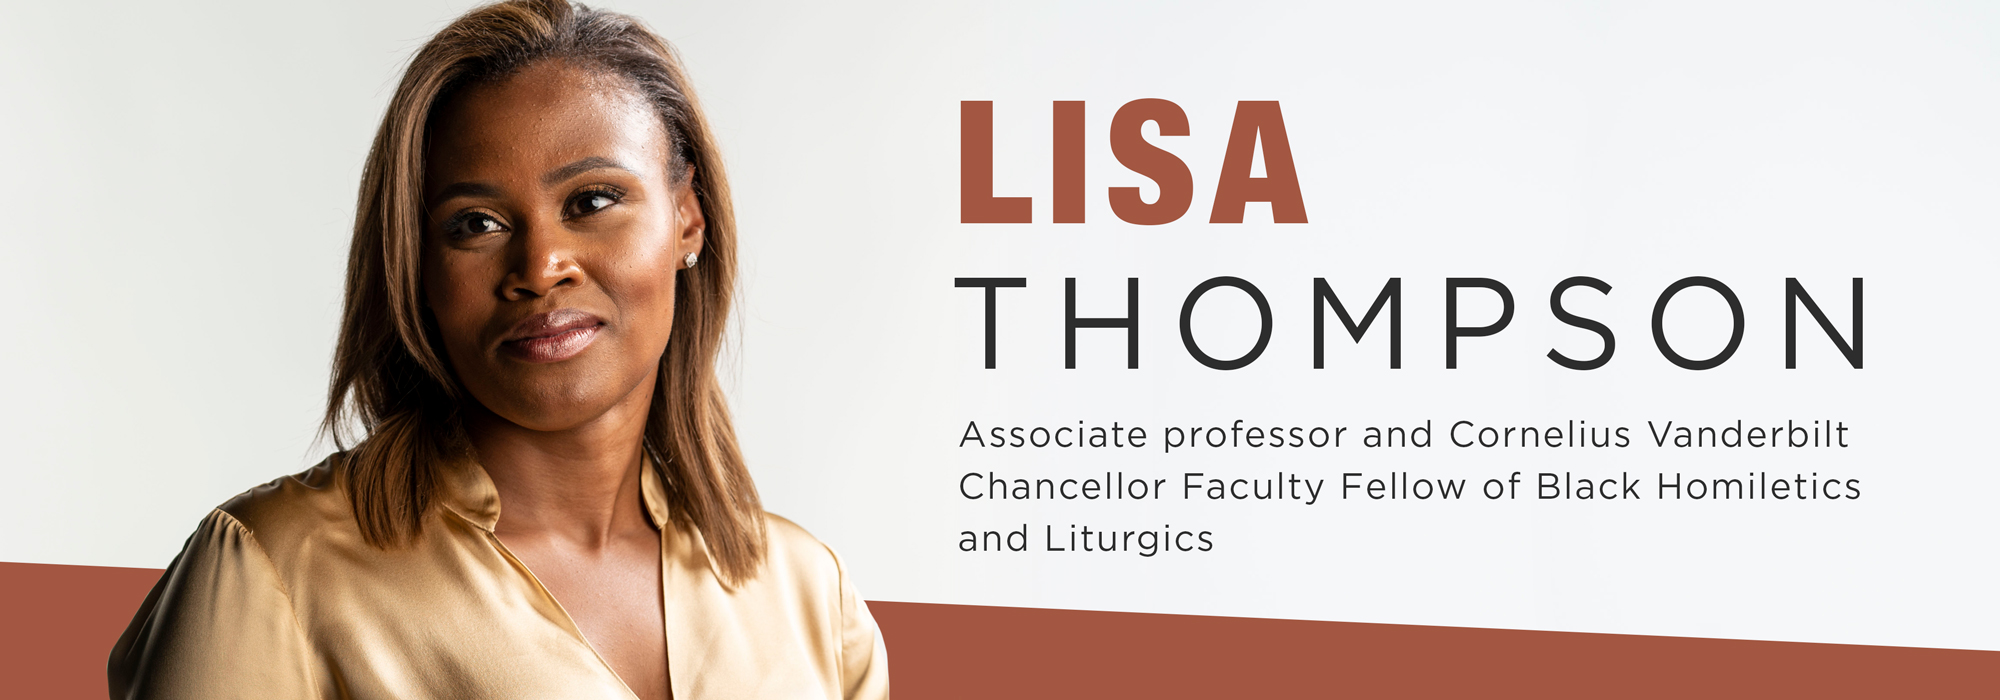 New faculty Lisa Thompson: 'Love' as an action word